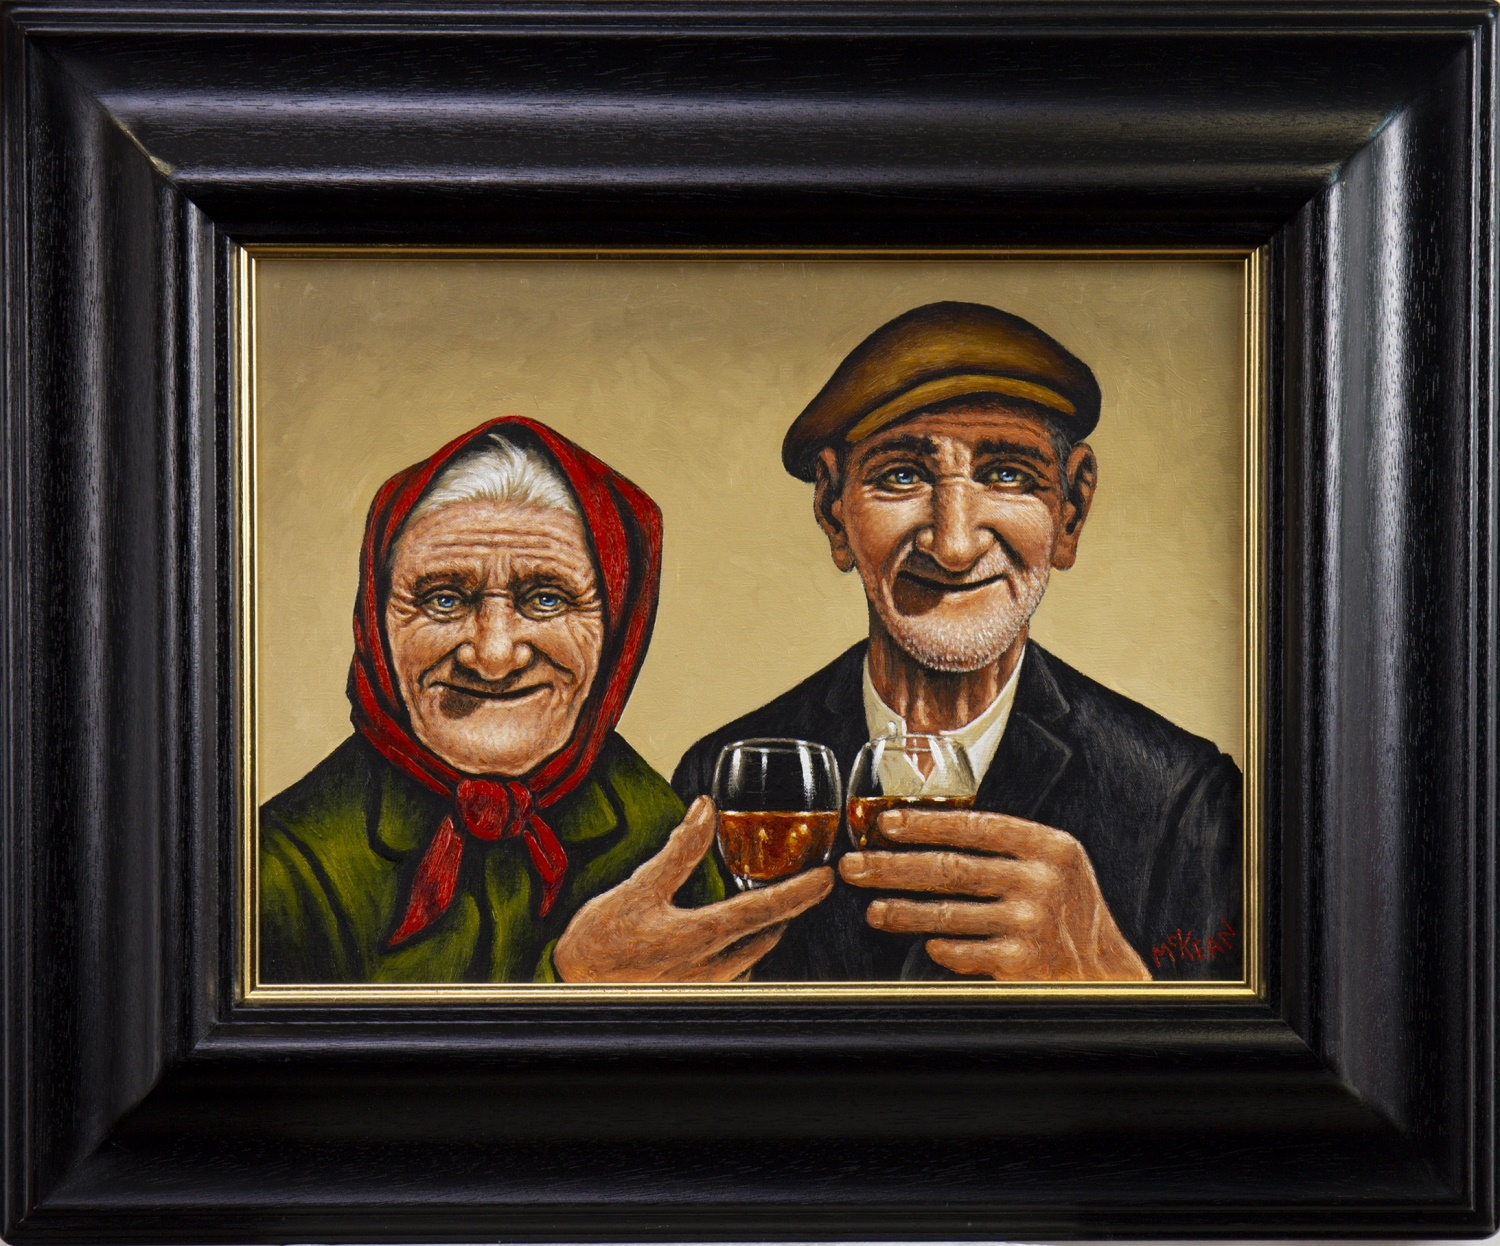 BEHIND EVERY GREAT MAN, AN OIL BY GRAHAM MCKEAN